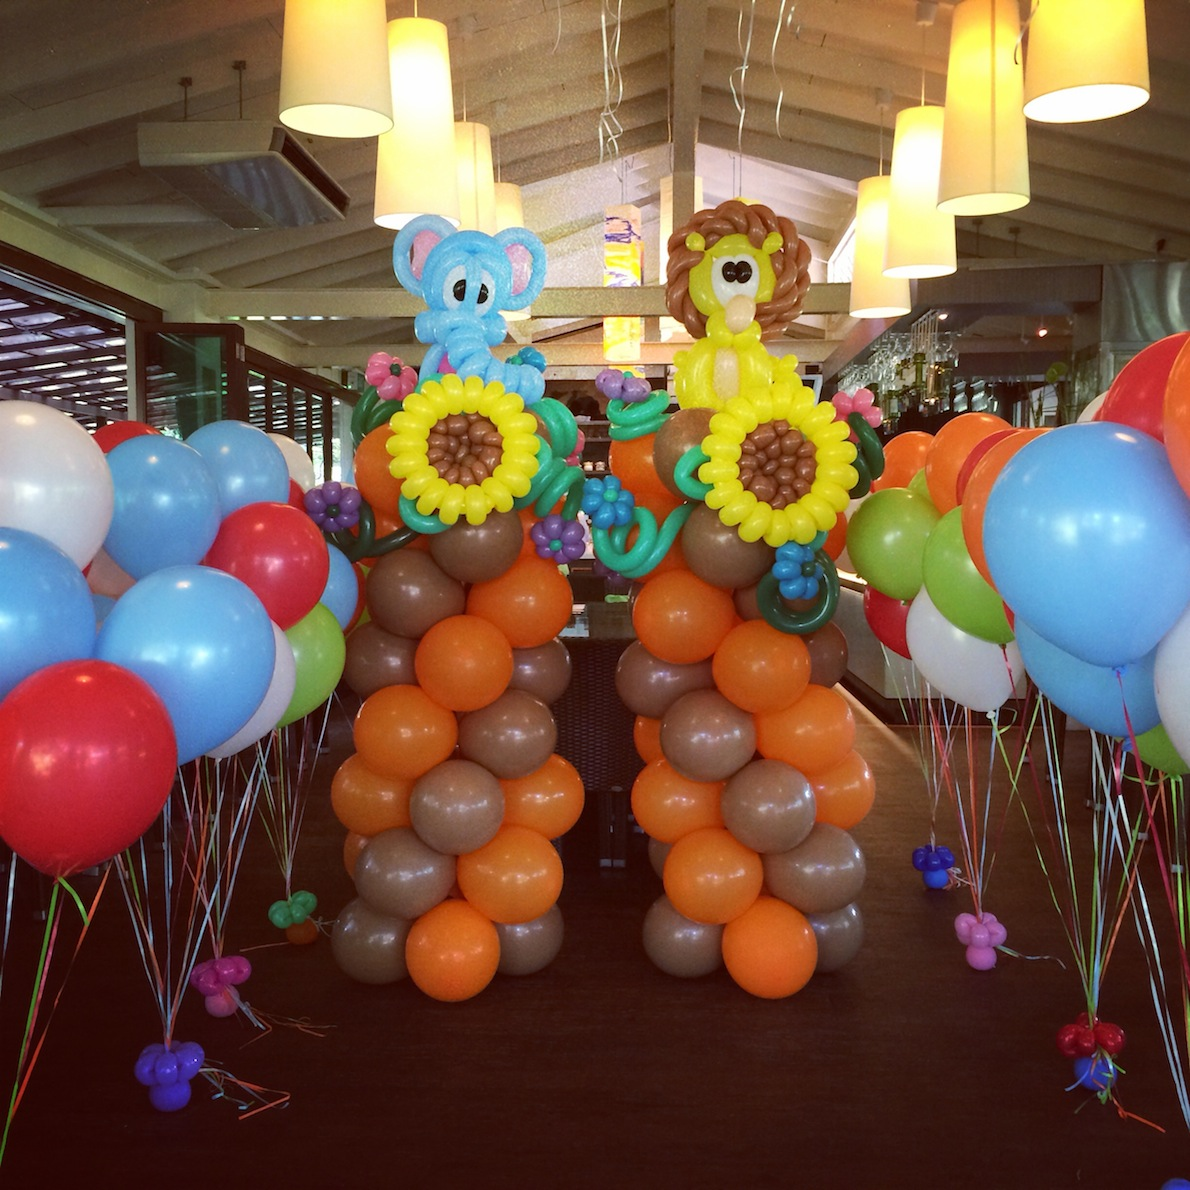 Balloon Elephant and Lion Display